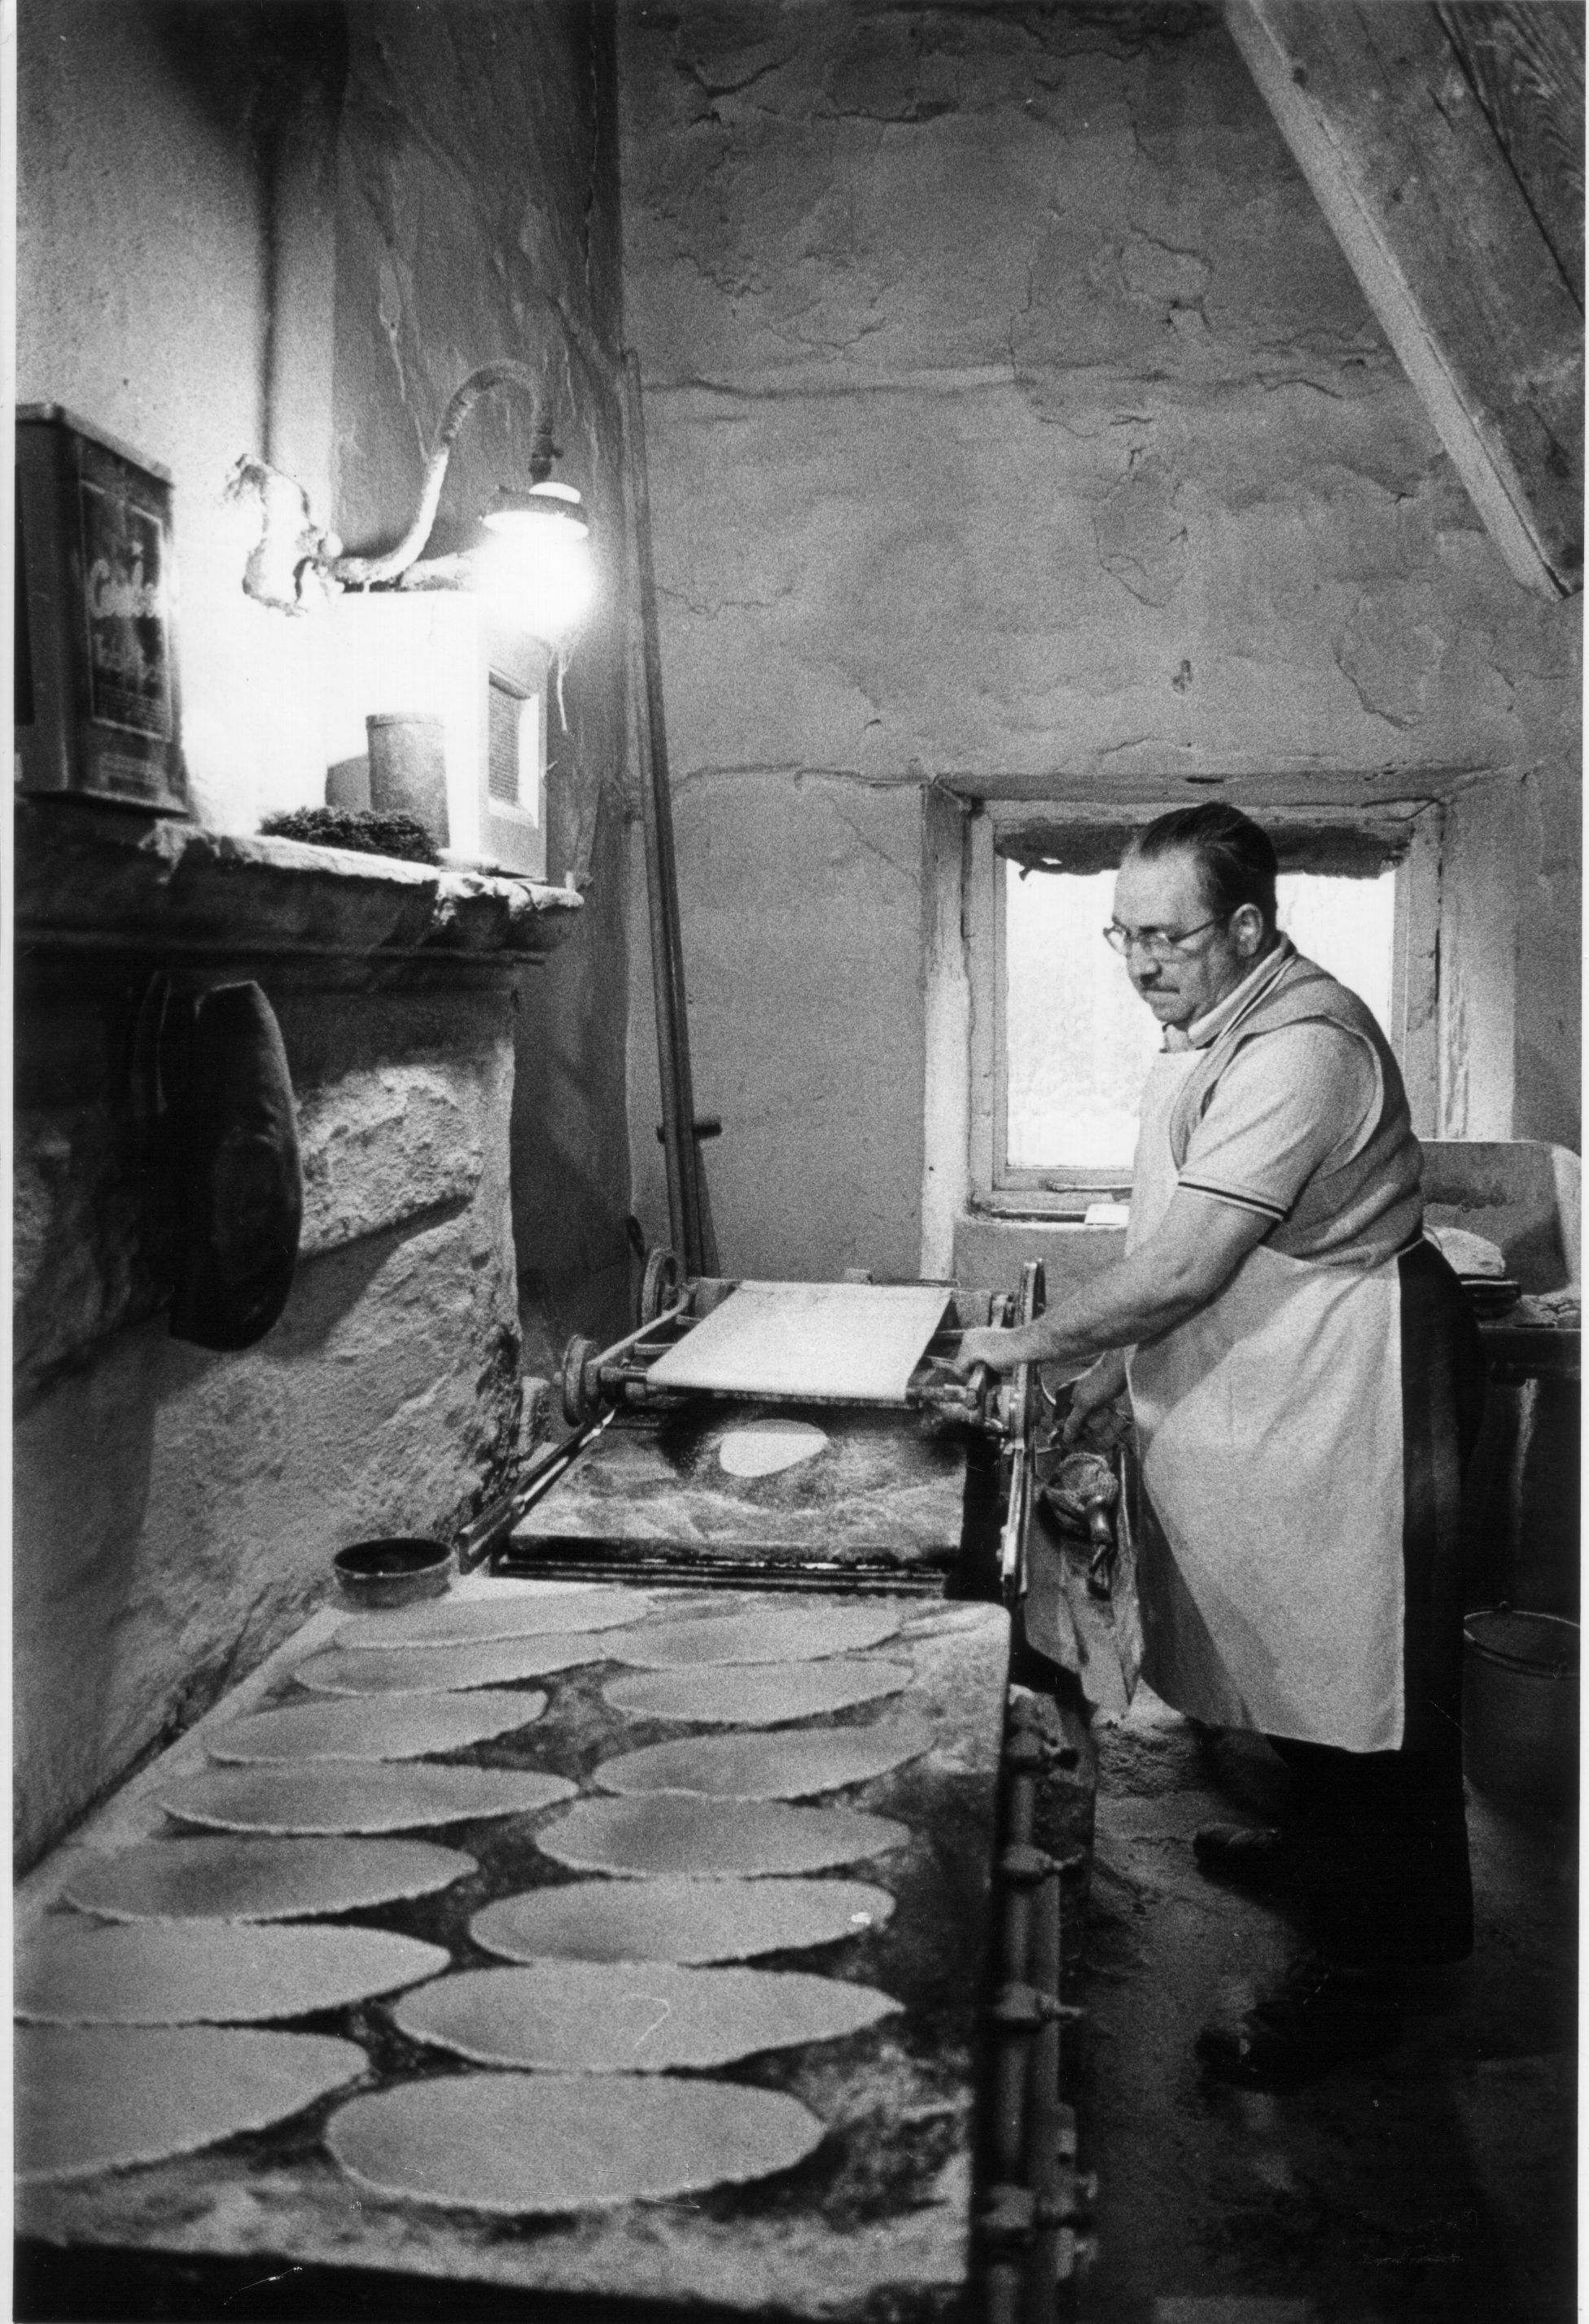 Alan making oatcakes early morning by gaslight, from the Family Archive